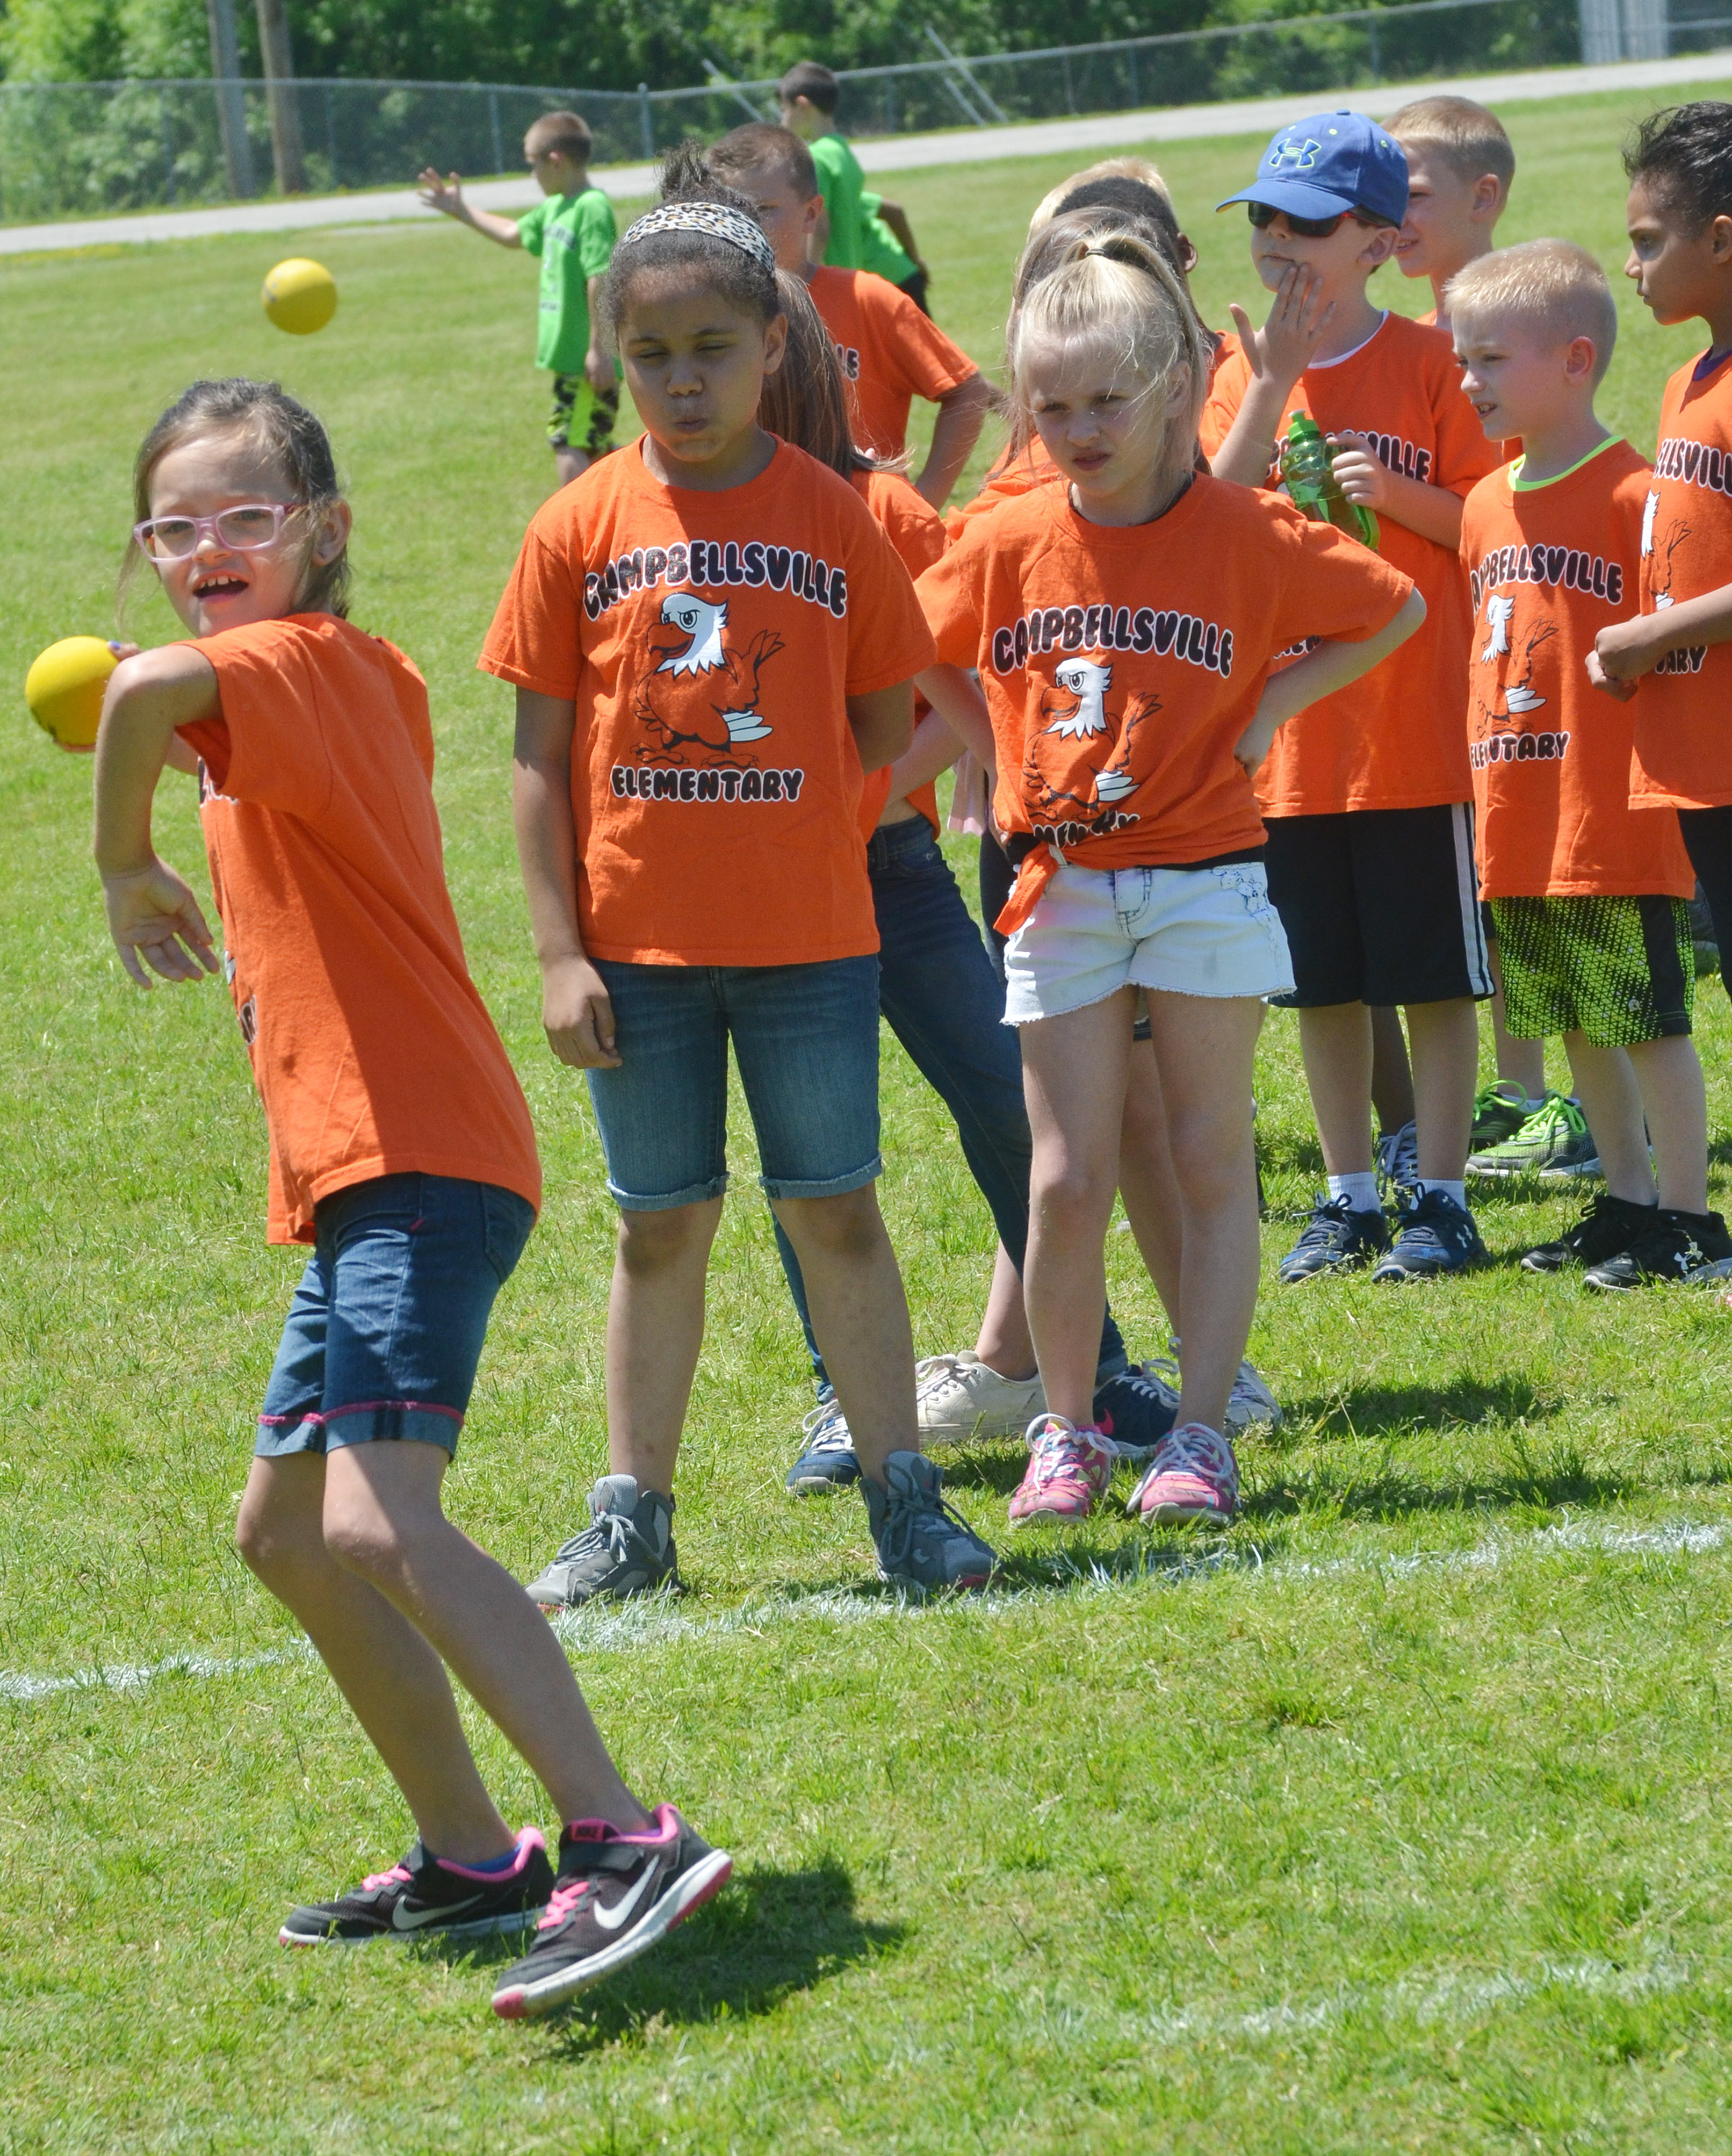 CES second-grader KayLee Lamer throws the ball.